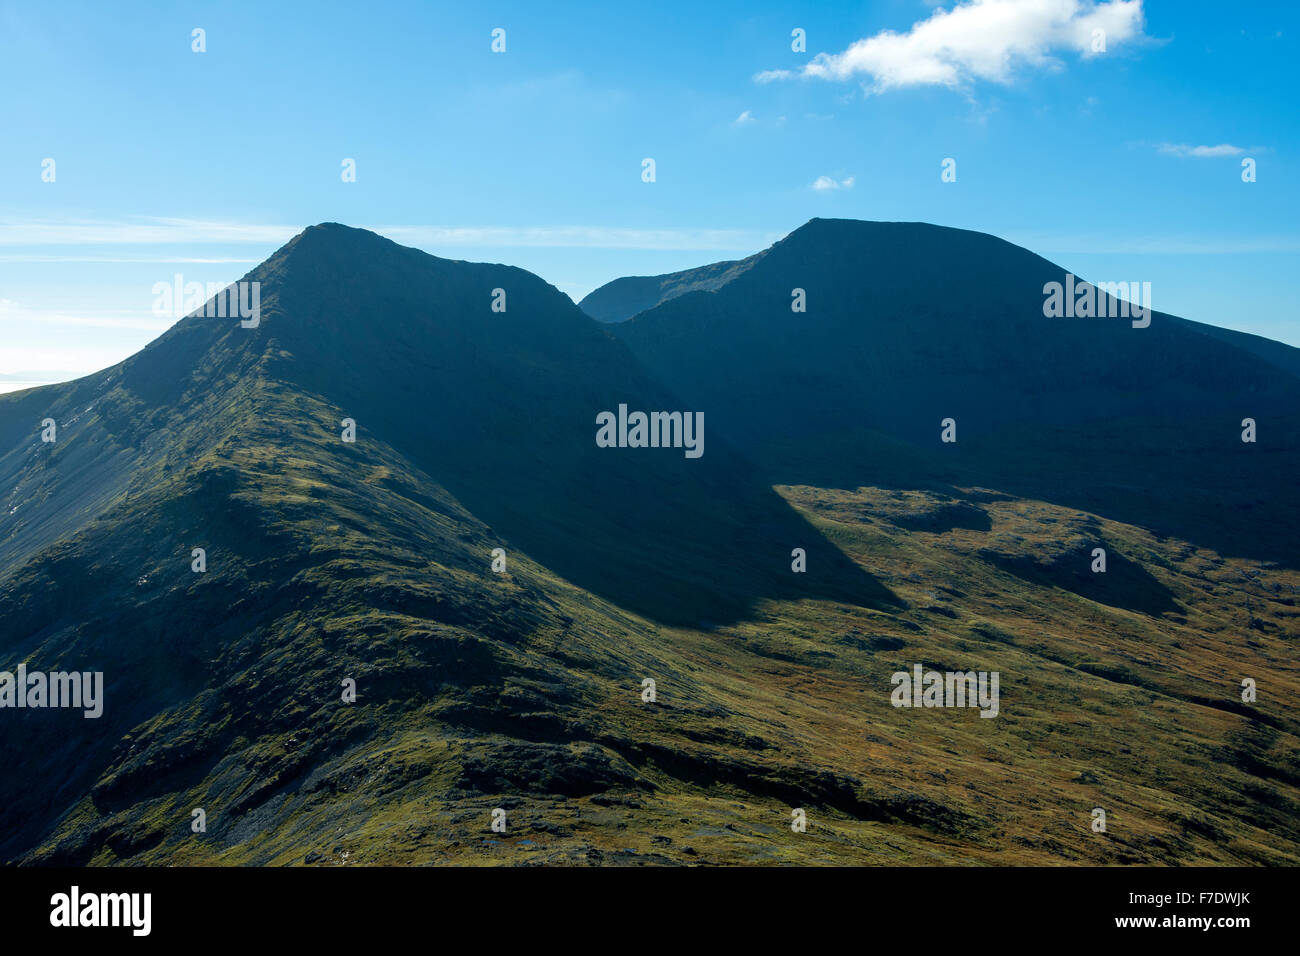 A' Chioch and Ben More from the summit of Beinn Fhada, Isle of Mull, Argyll and Bute, Scotland, UK - Stock Image